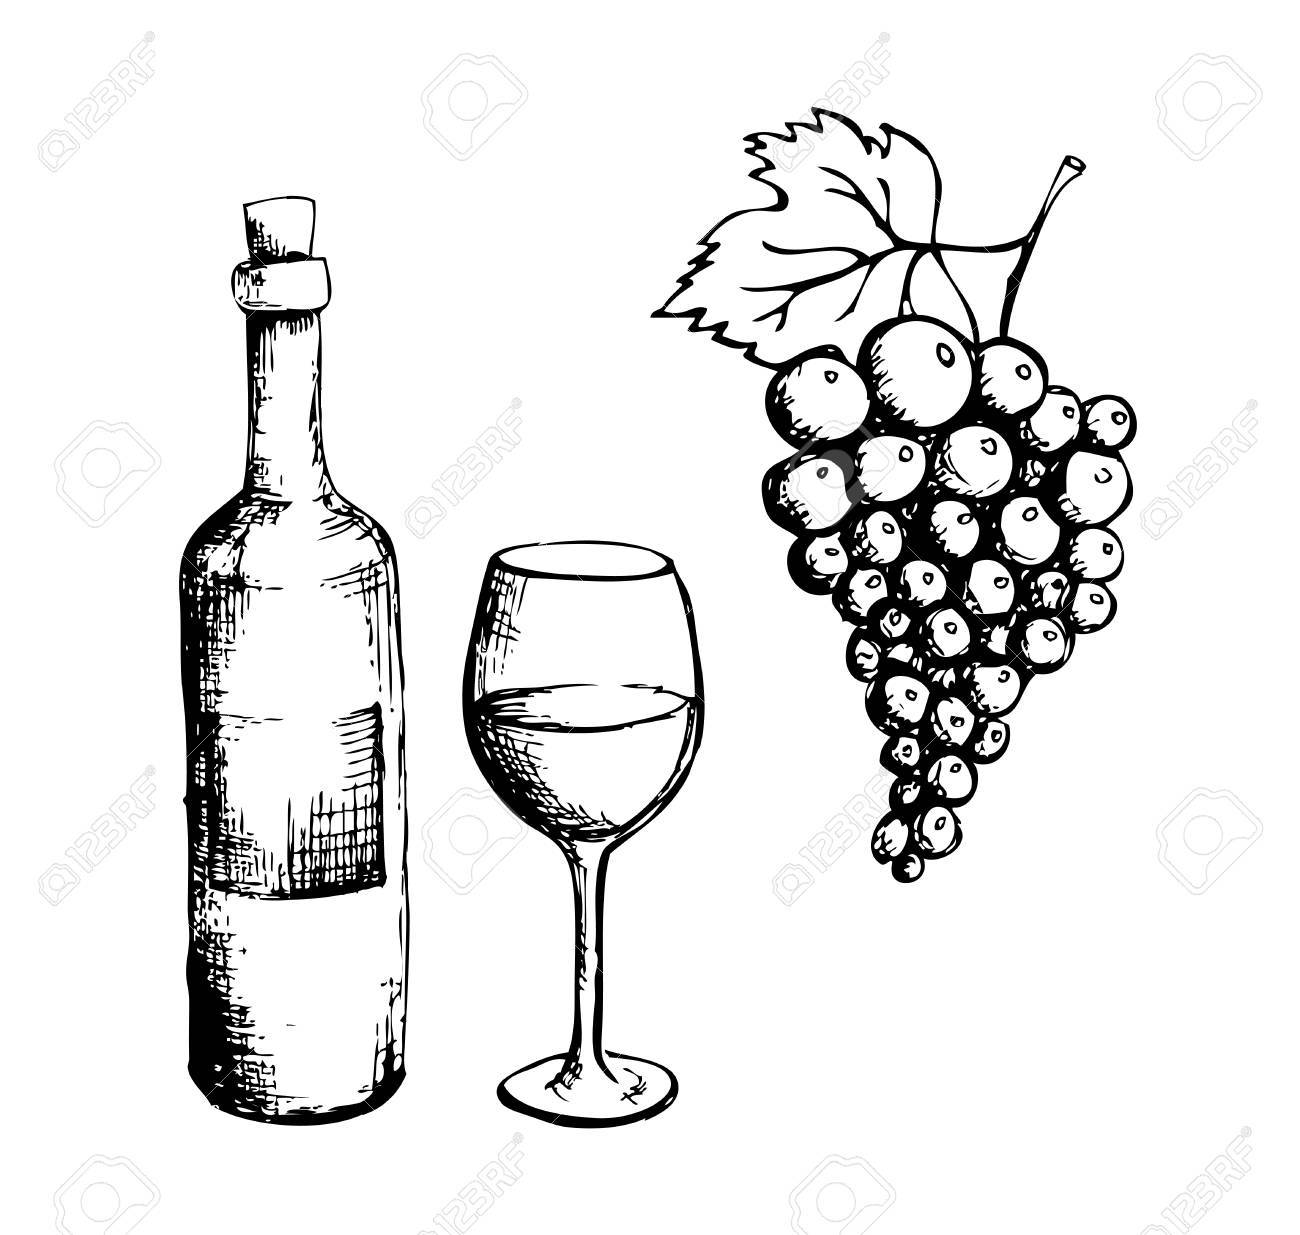 1300x1235 Sketch Of Wine Bottle, Glass And Grapes Royalty Free Cliparts